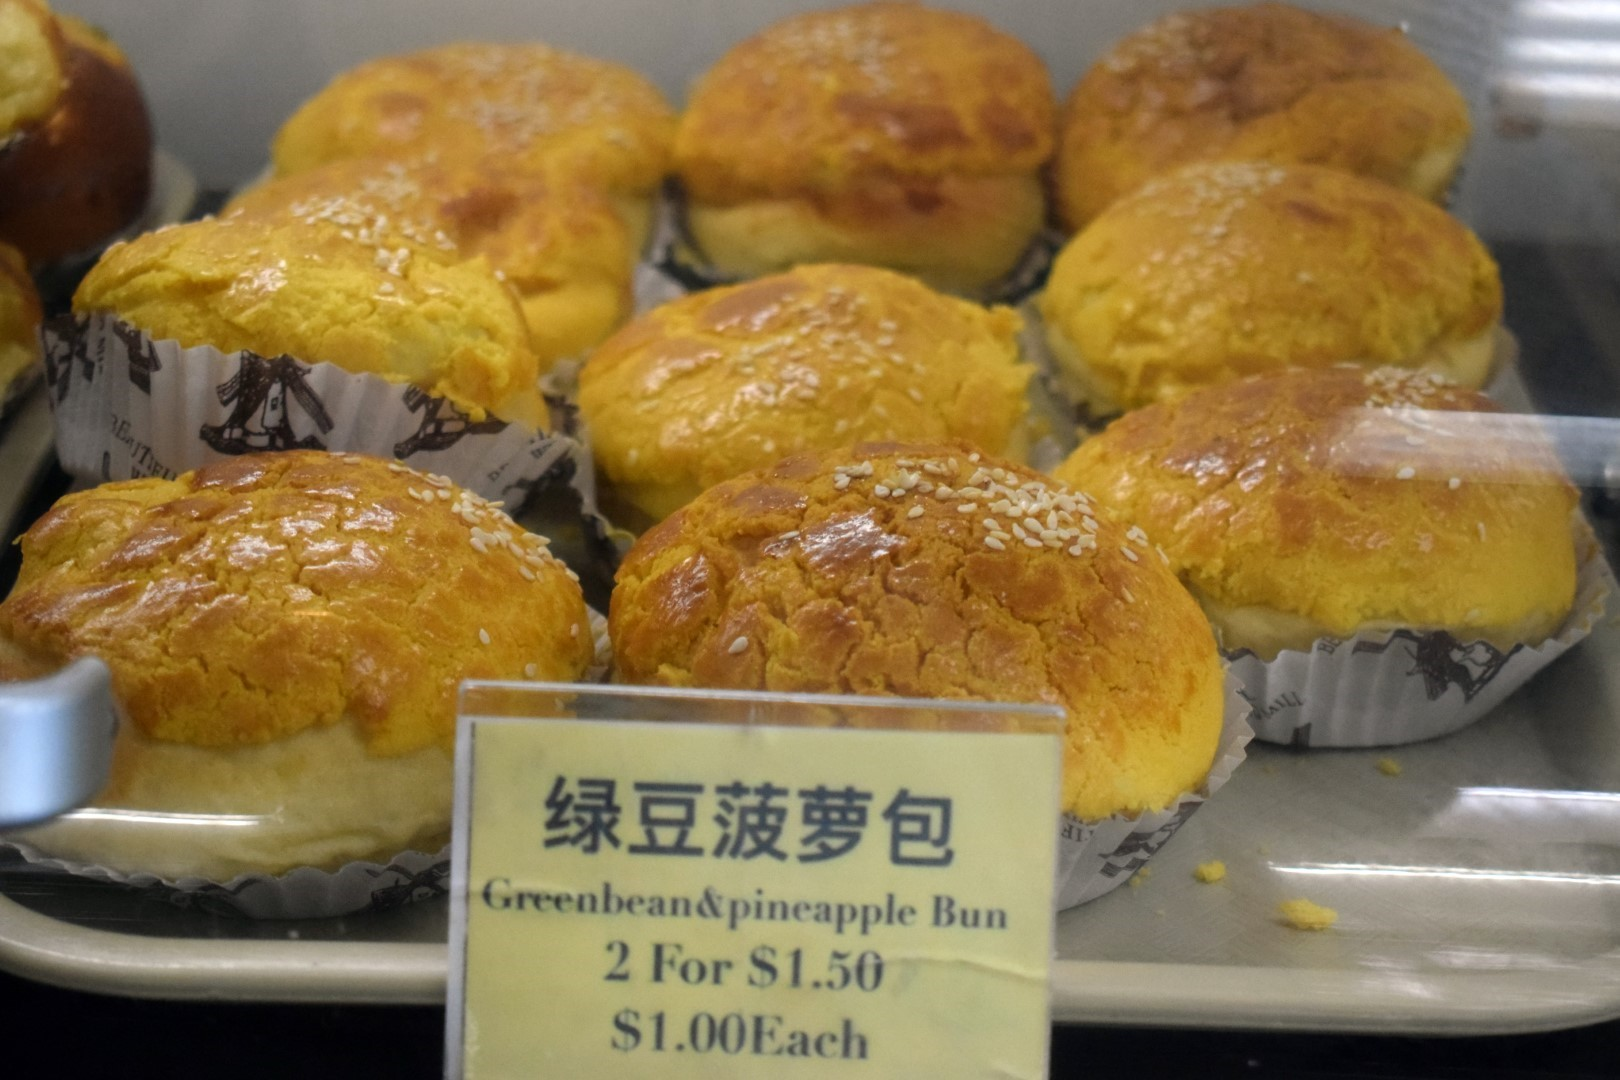 Mashion Bakery, Chinatown, 345 Spadina Ave, Toronto